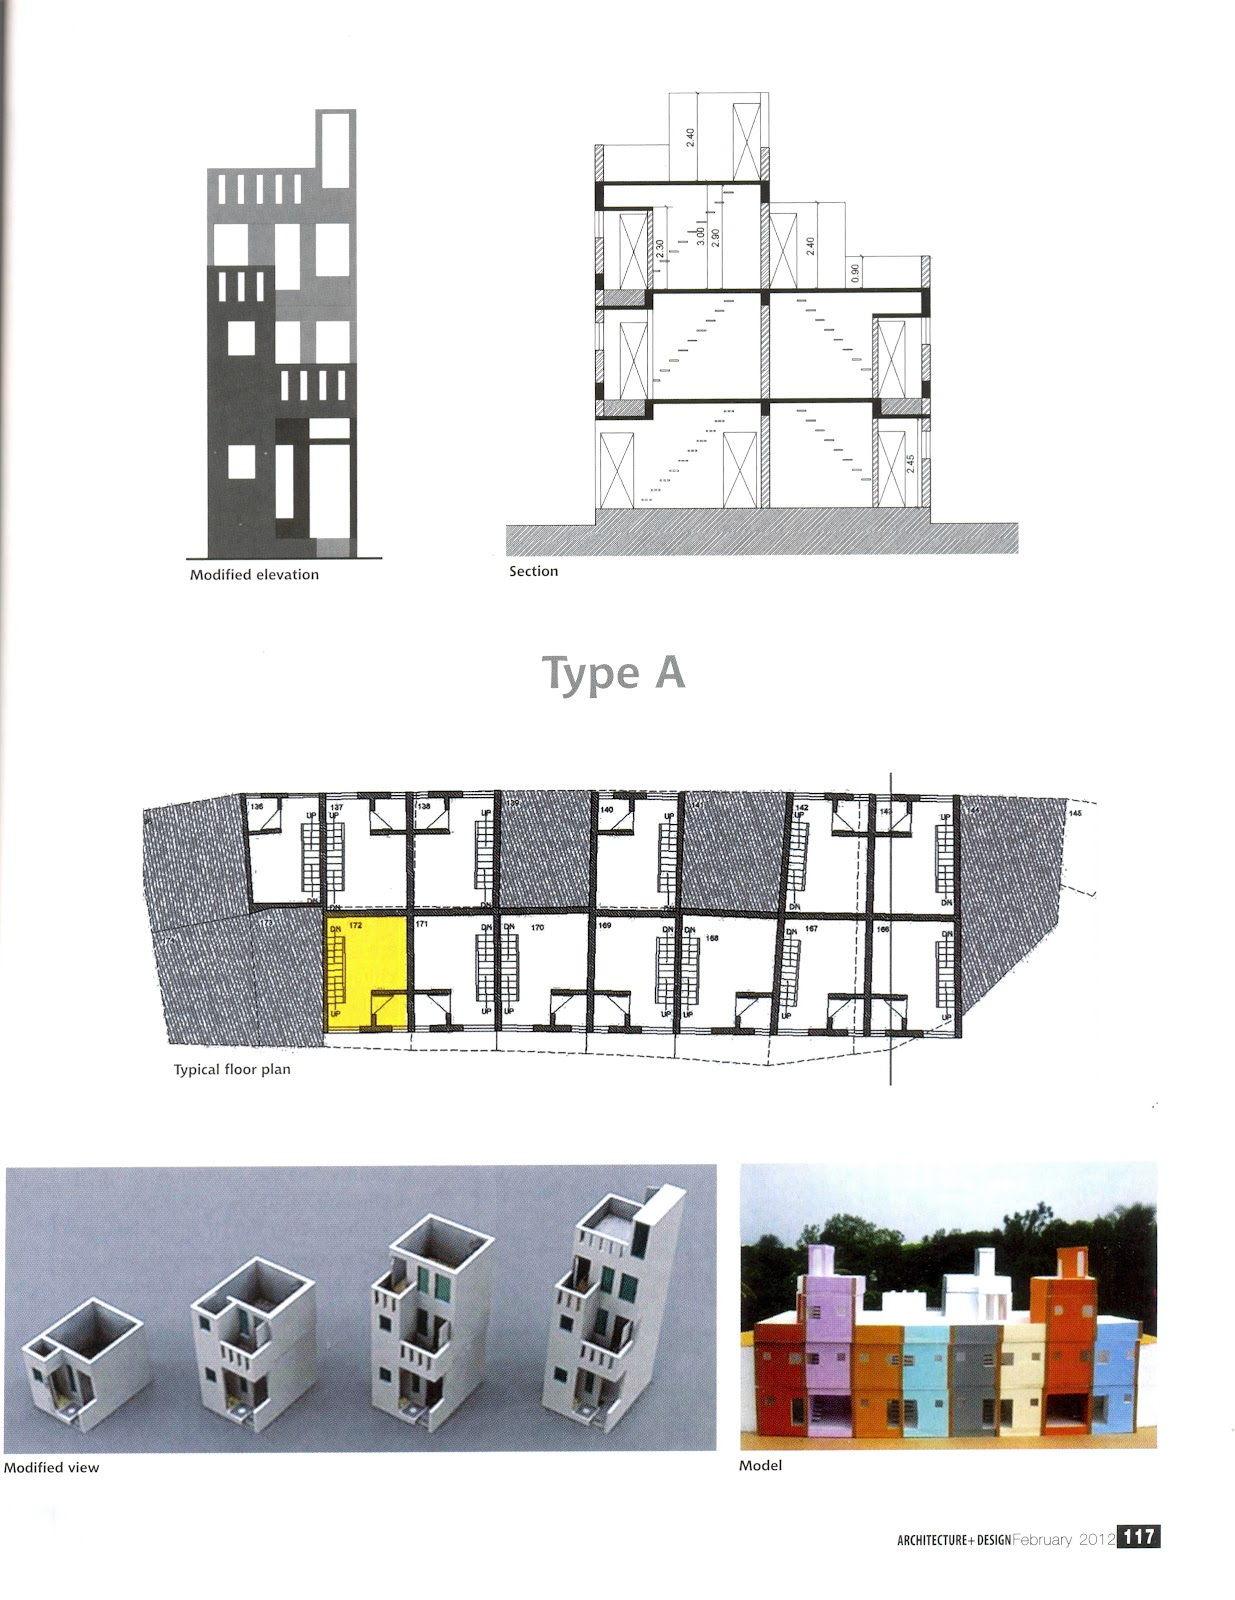 Prasanna desai architects works in public domain bsup for Architectural design issues